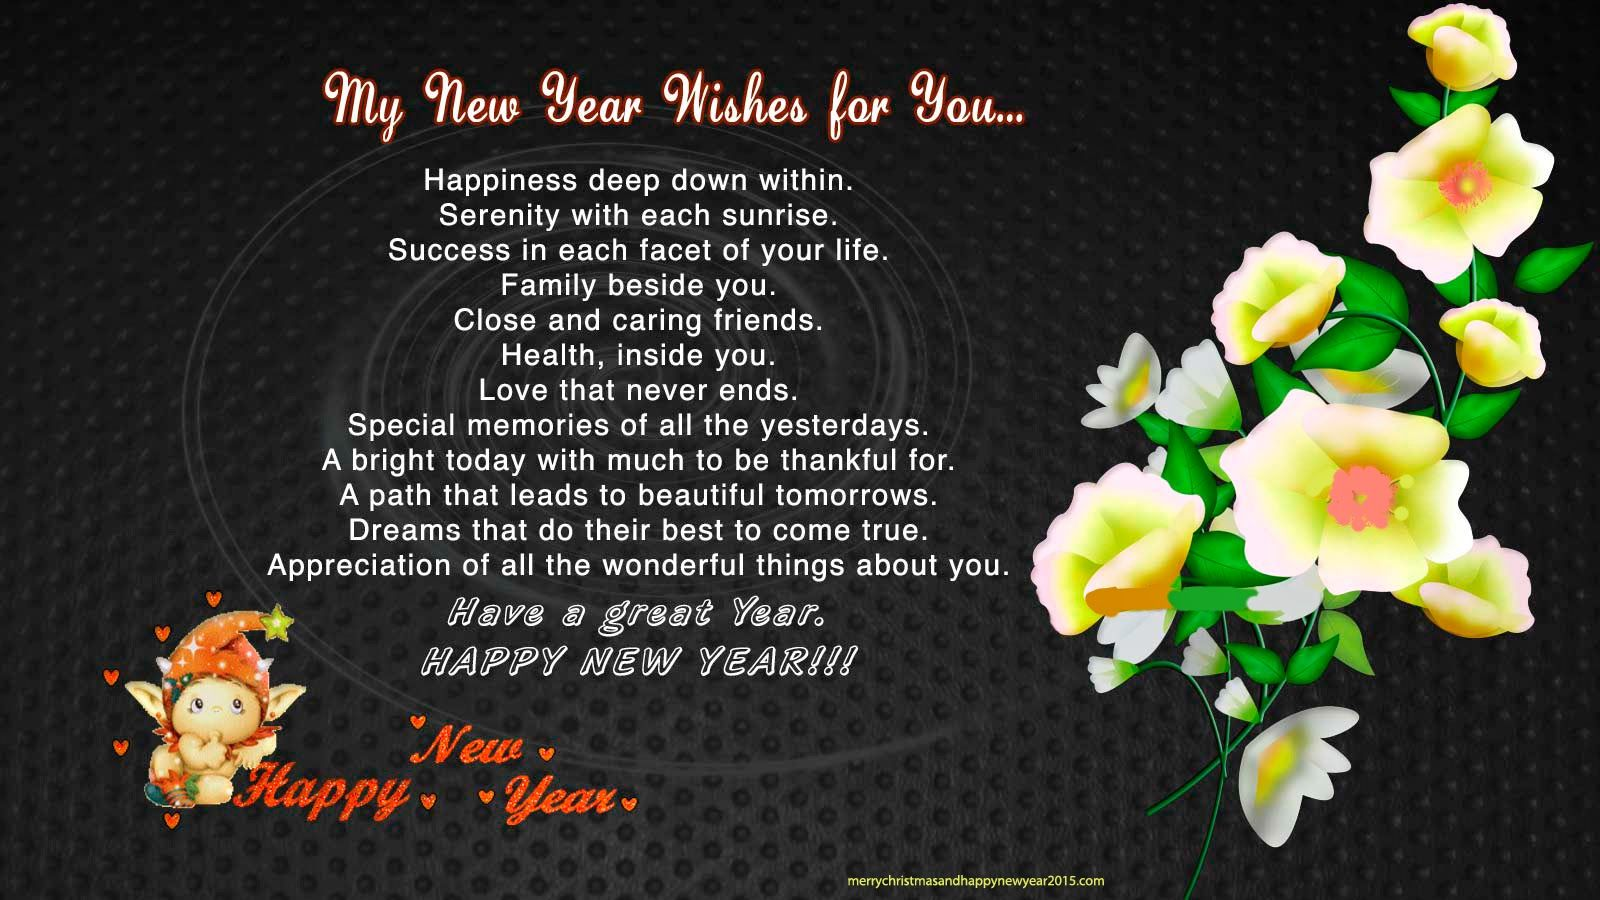 New Year Poems Happy New Year 2014 Wishes Quotes: New Year 2015 Poems In English